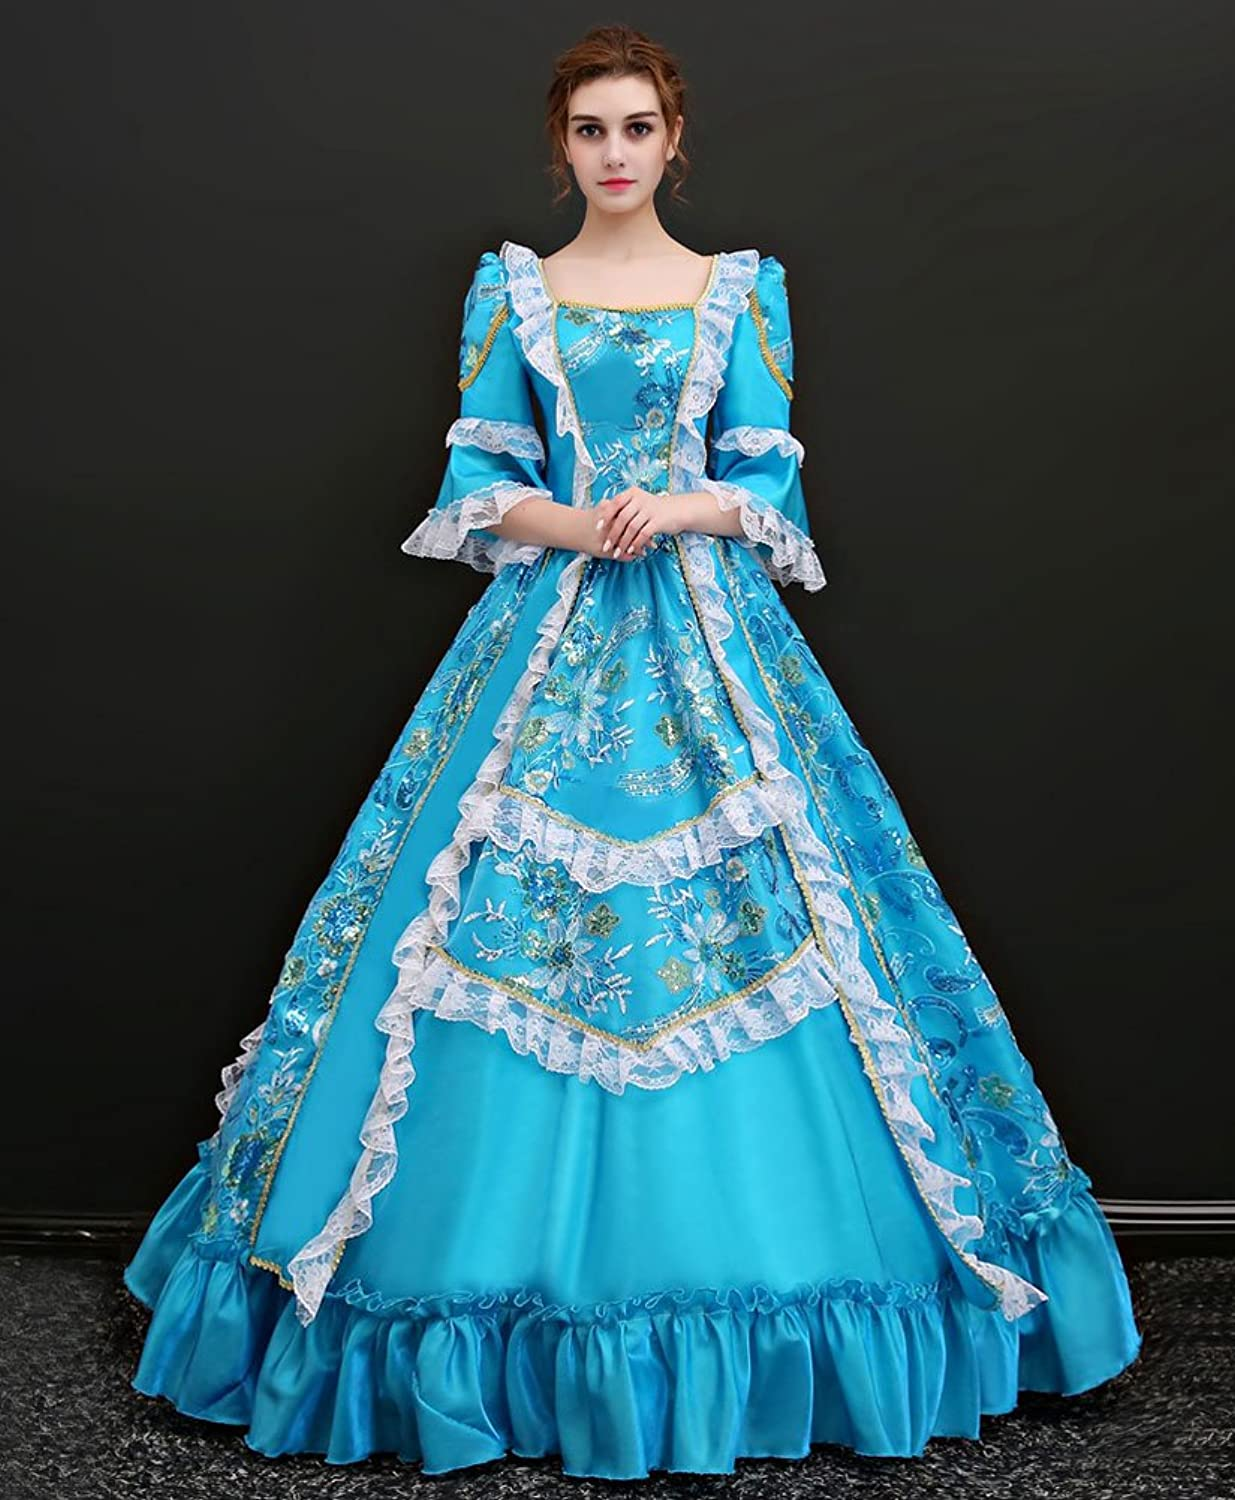 Amazon.com: Zukzi Women\'s Floor Length Victorian Dress Costume ...